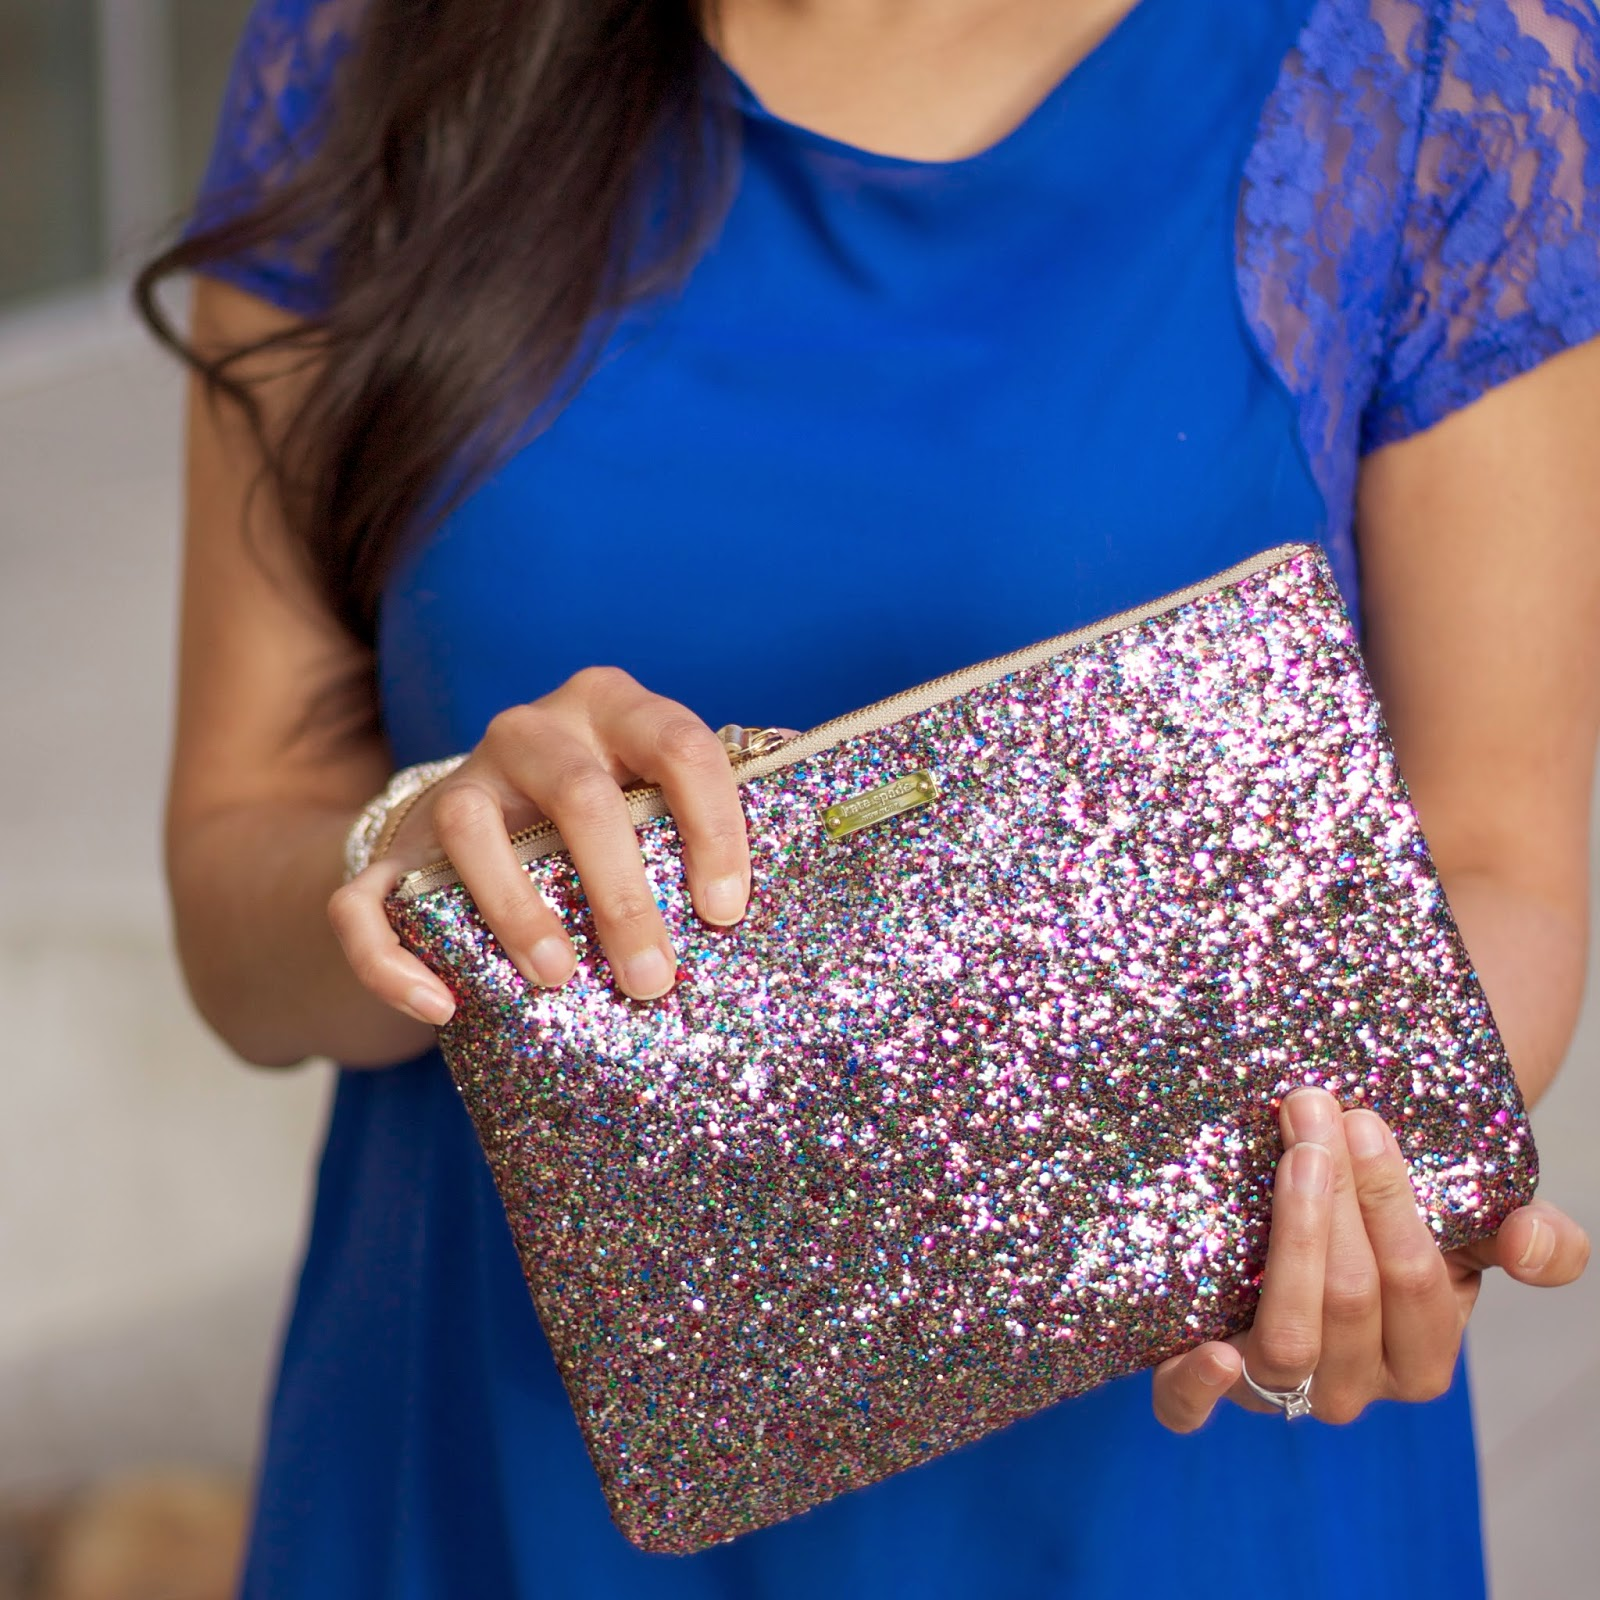 Fun clutches, Kate Spade Sales, Kate Spade multicolored glitter, touch of glitter on an outfit